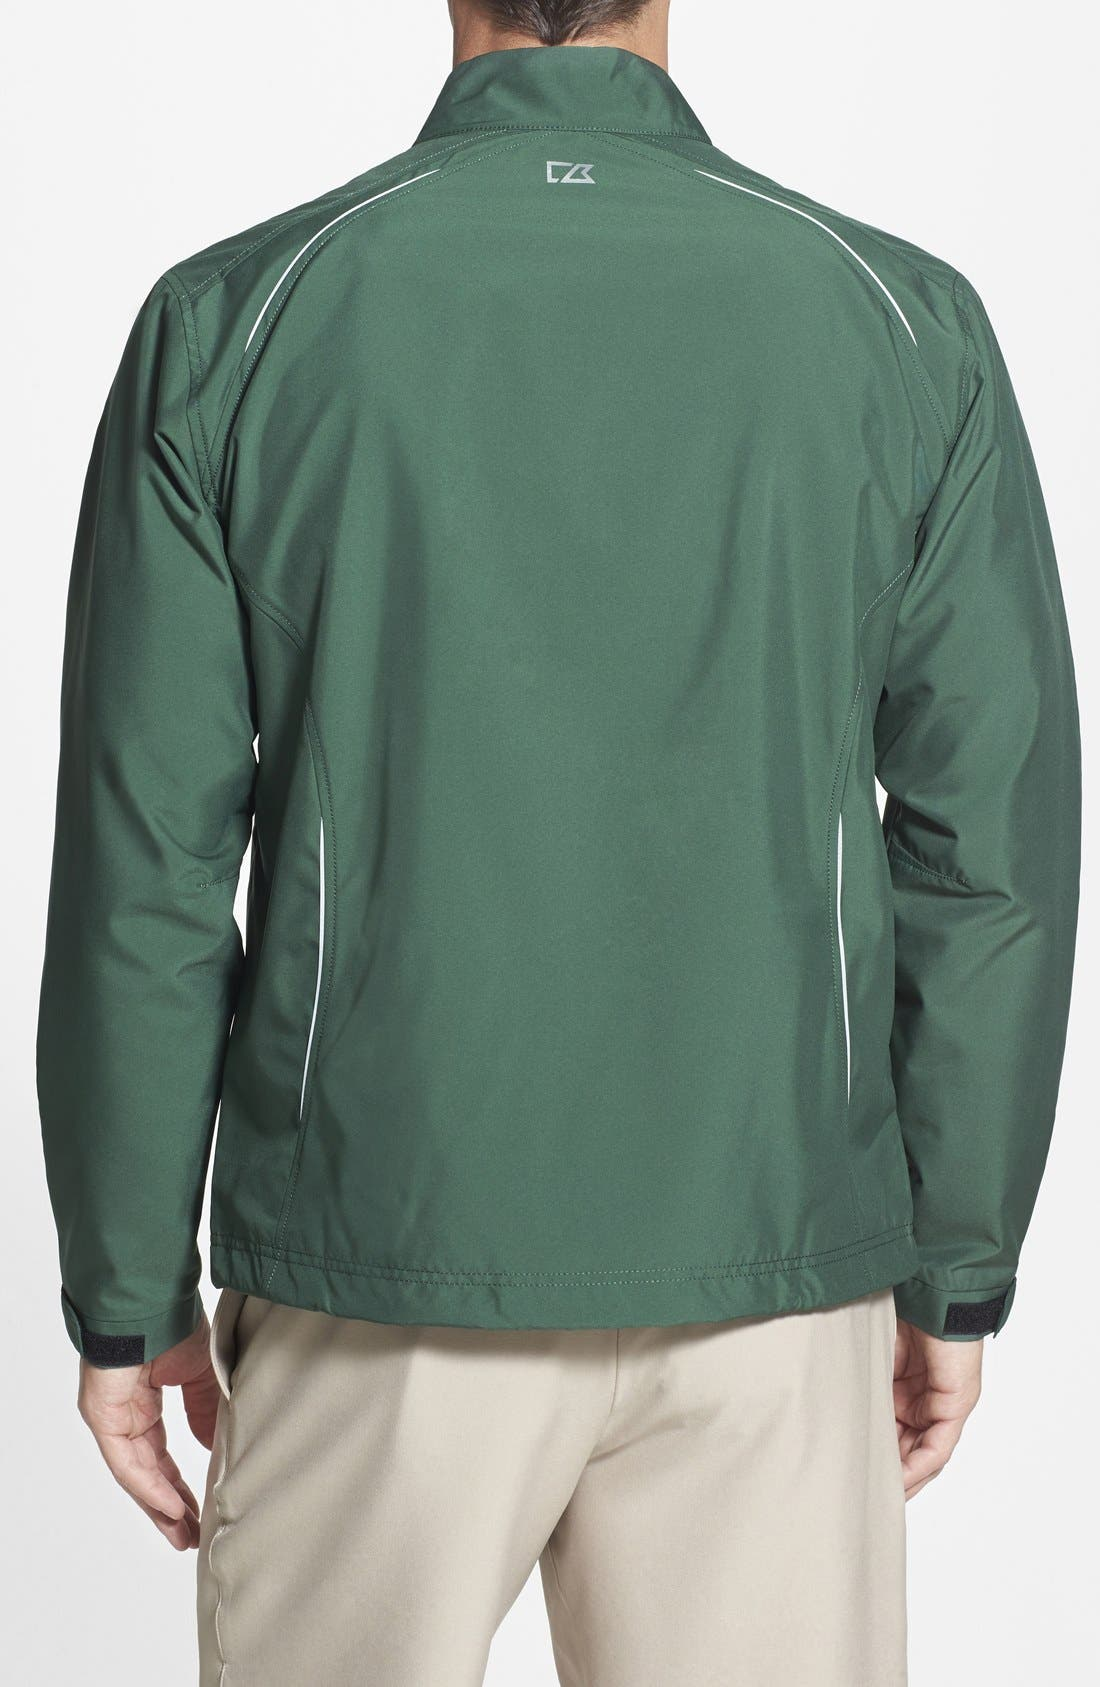 New York Jets - Beacon WeatherTec Wind & Water Resistant Jacket,                             Alternate thumbnail 2, color,                             377